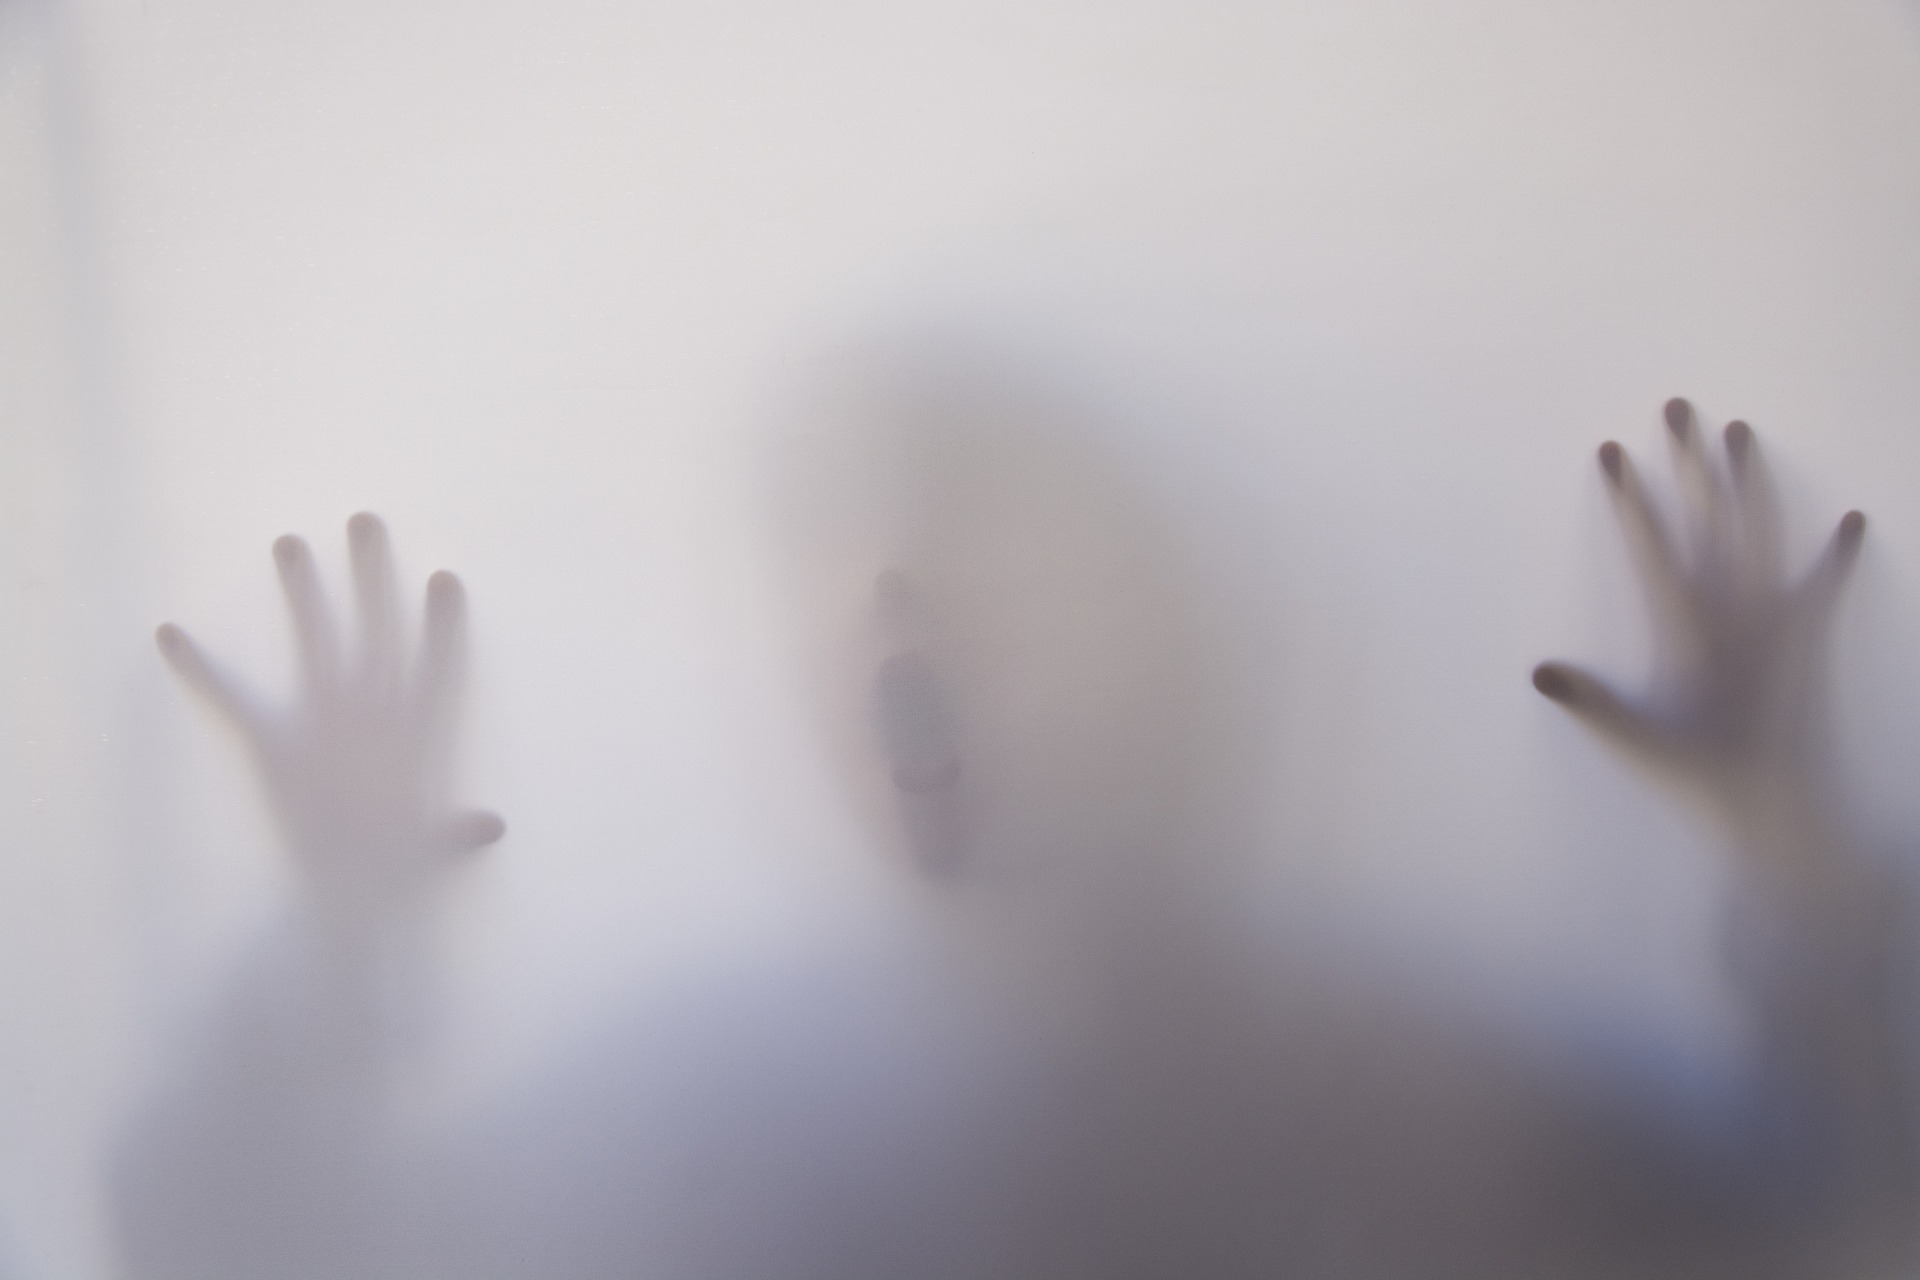 Milky glass with the blurry figure of a child behind it. Both hands are resting against the glass, their face is close to it as well, their mouth is open as if struggling for air.